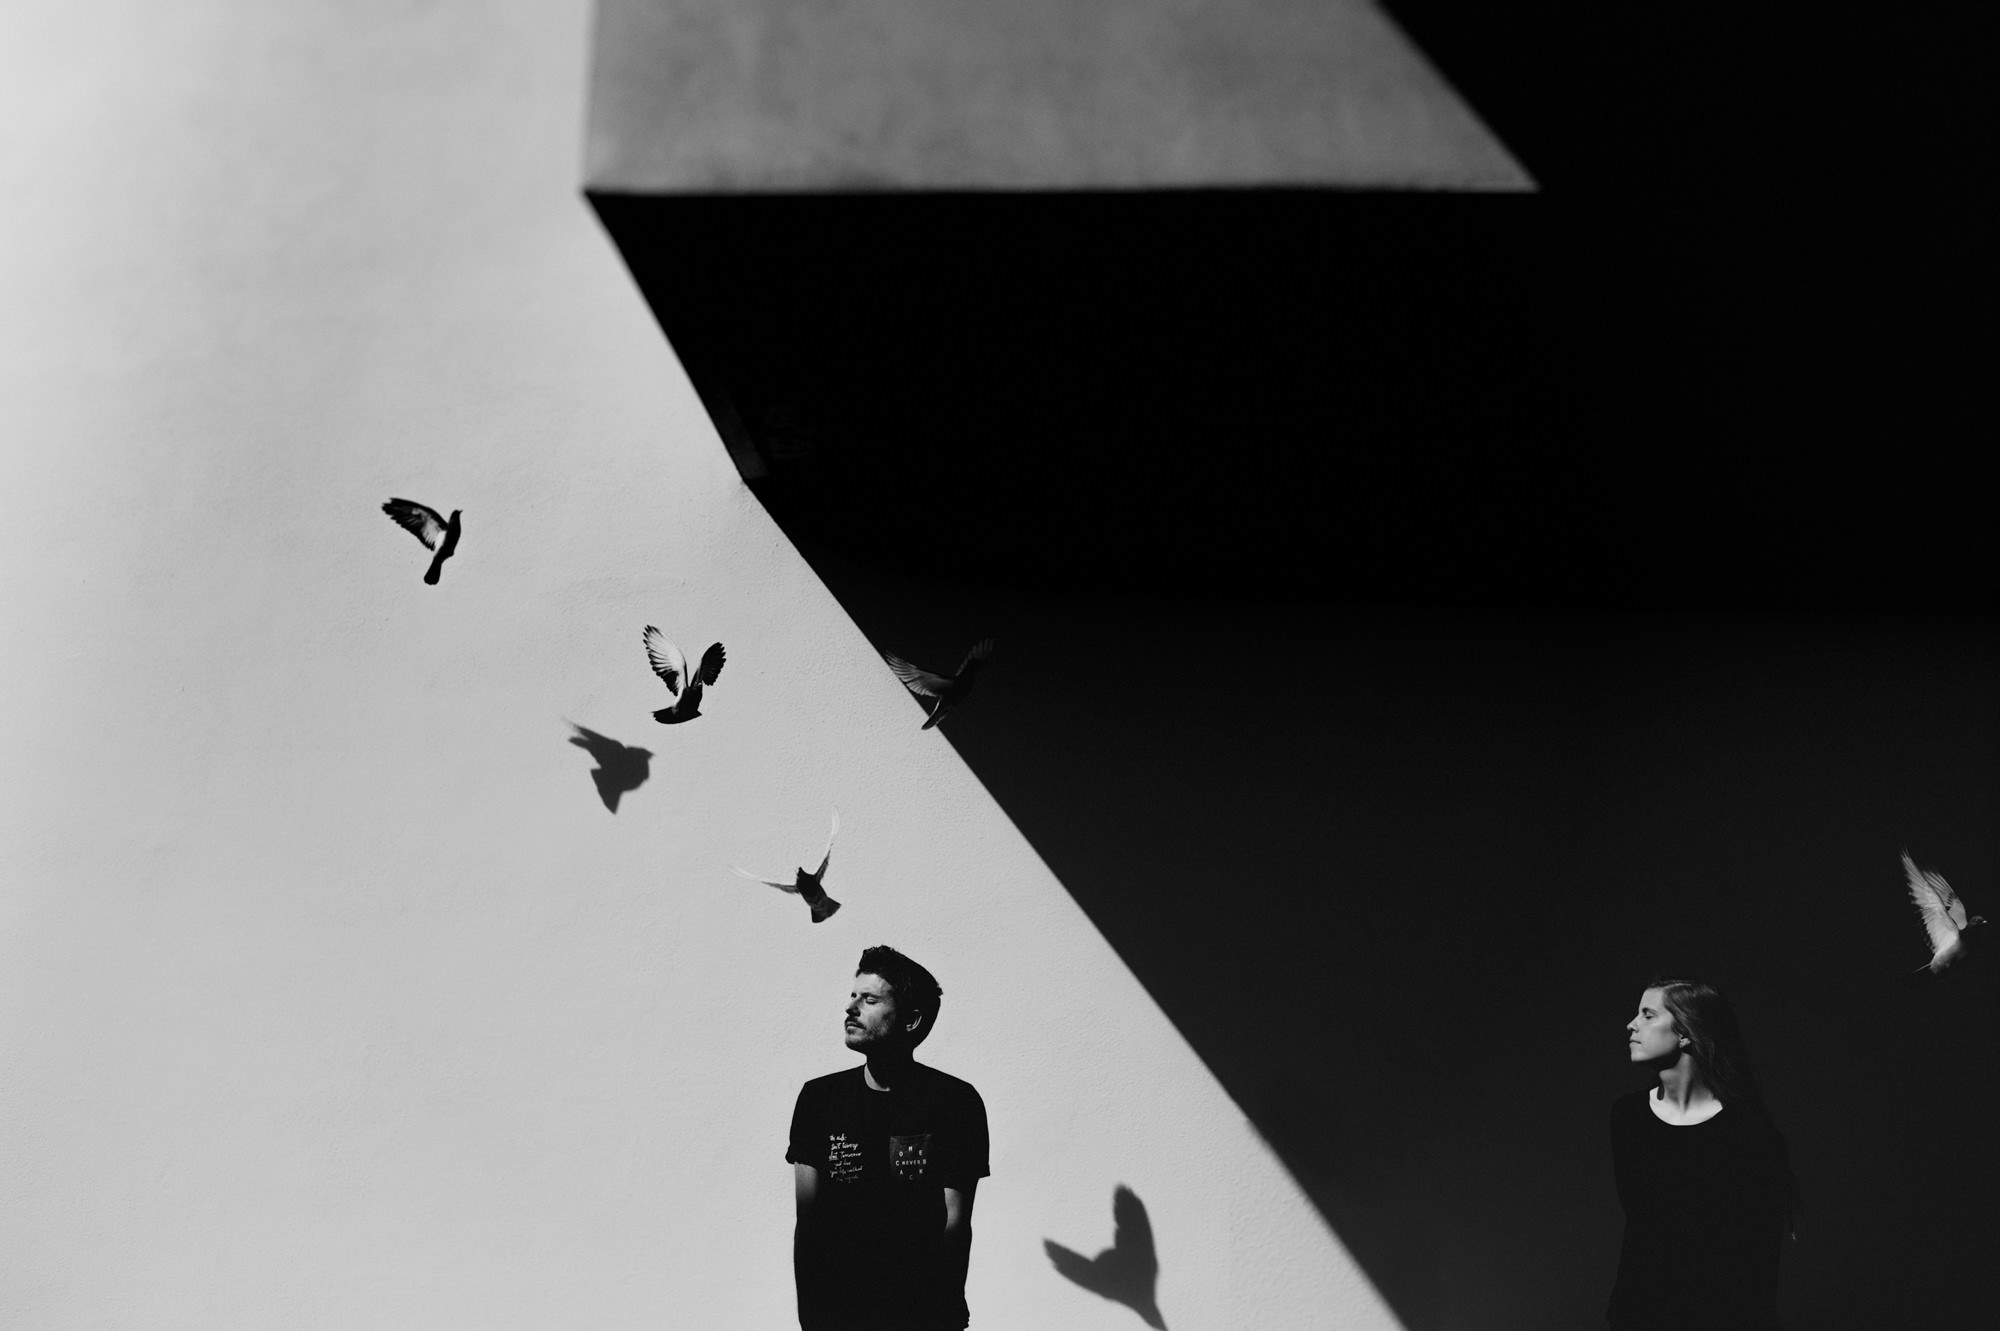 Creatively composed engagement portrait by Fer Juaristi